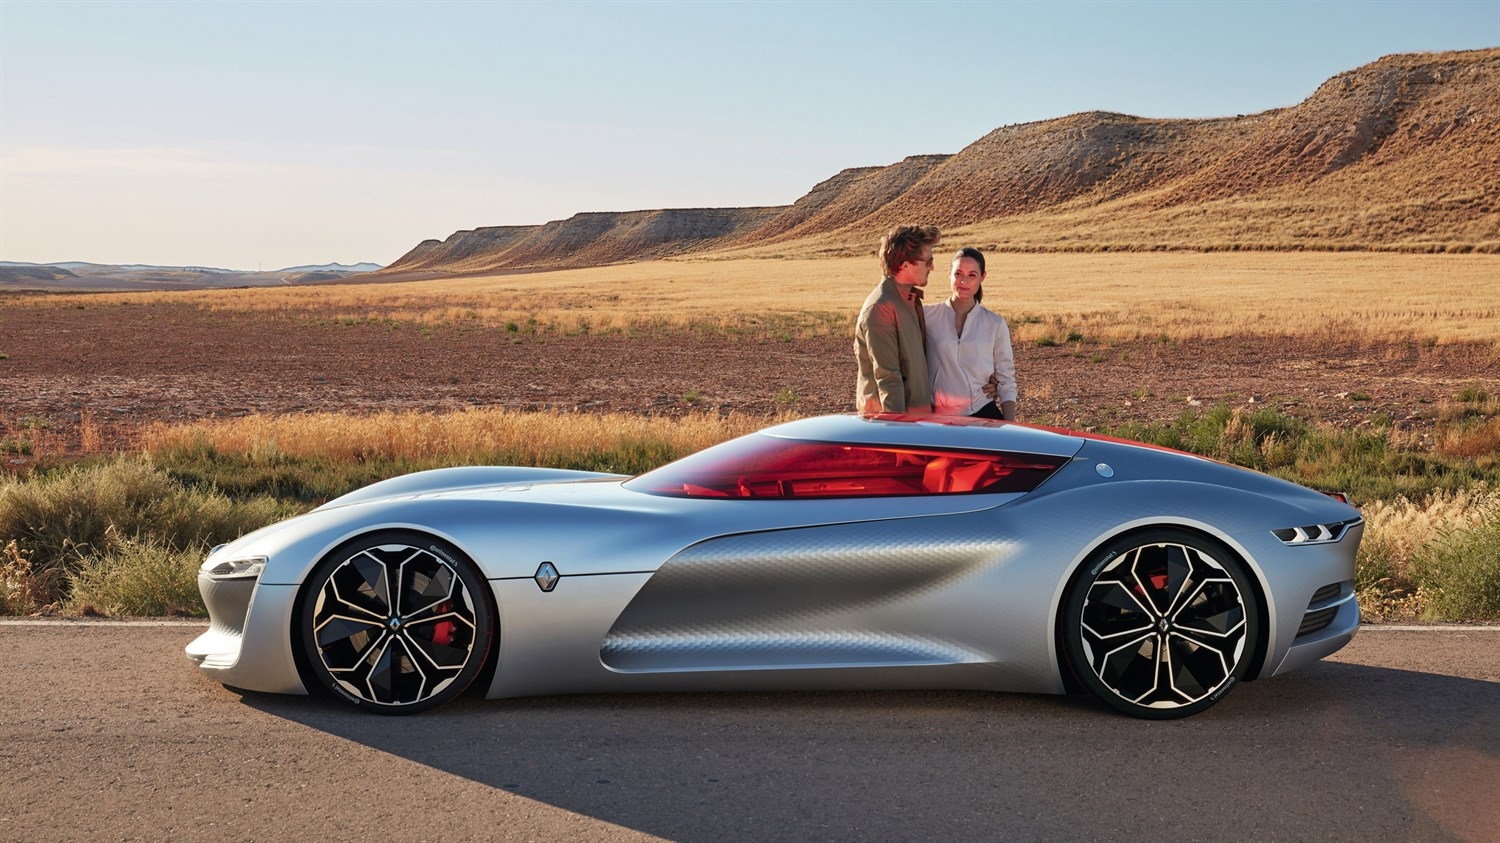 A couple standing next to Renault TREZOR concept car on the road""